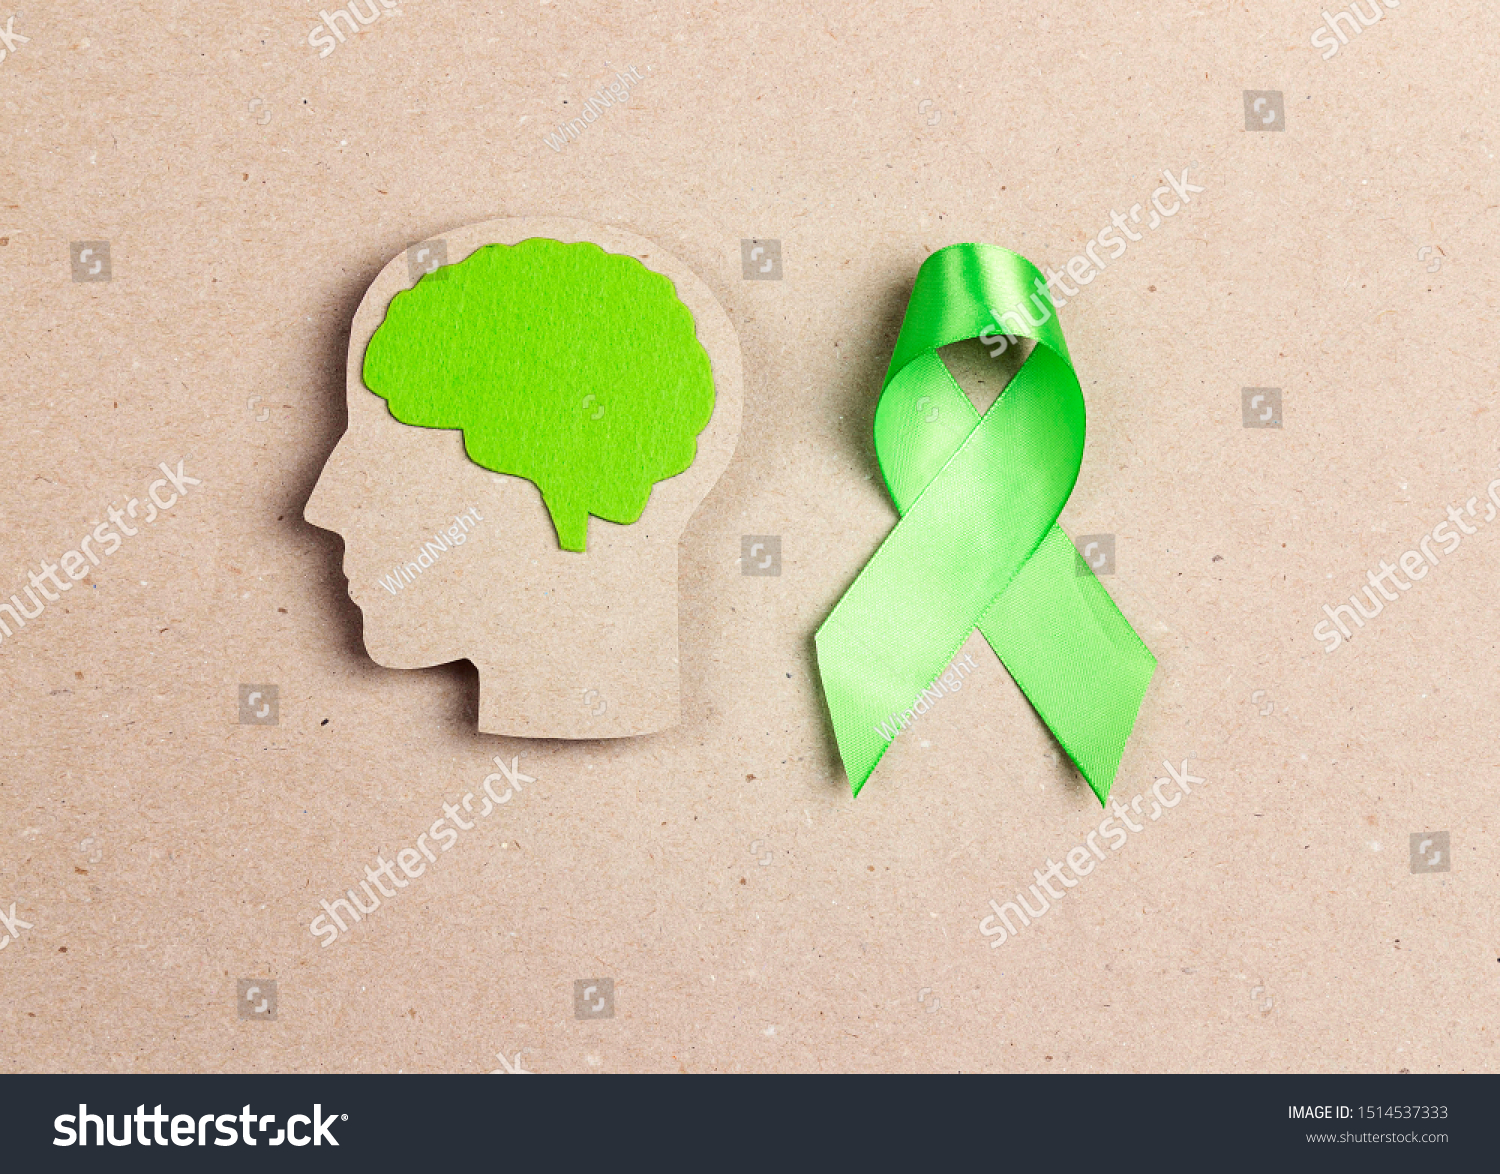 World mental health day concept. Green awareness ribbon and brain symbol on a brown background.